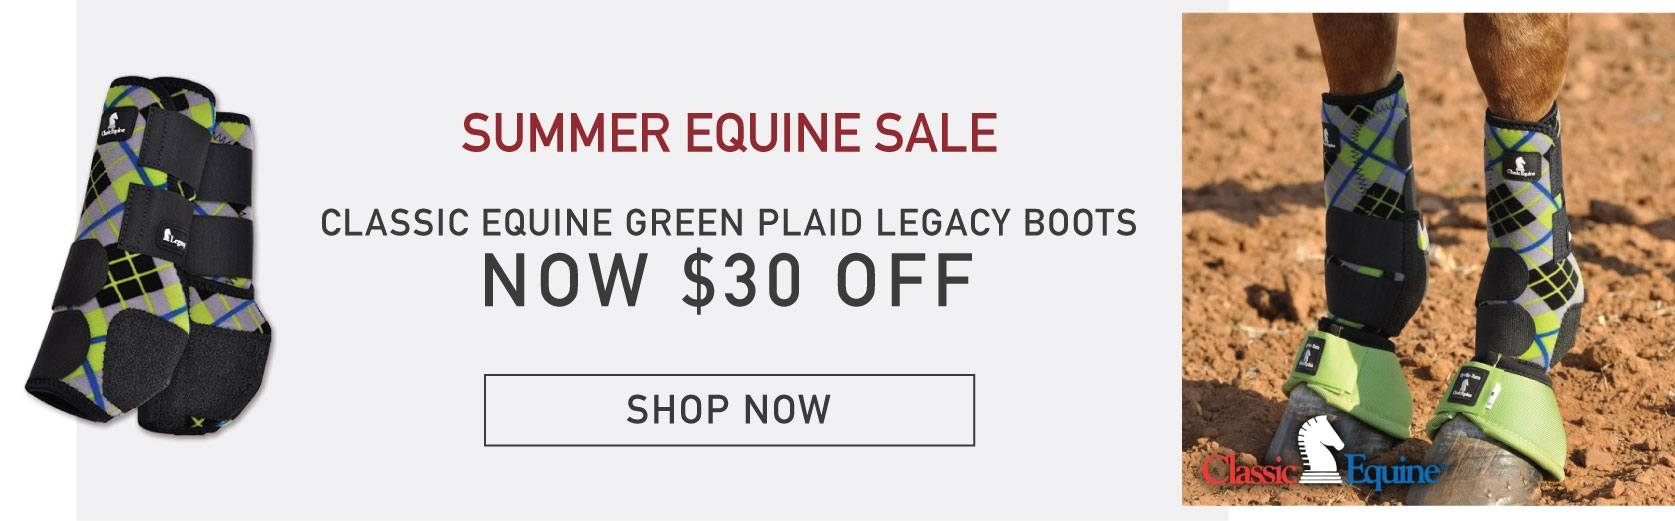 Classic Equine Green Plaid Legacy